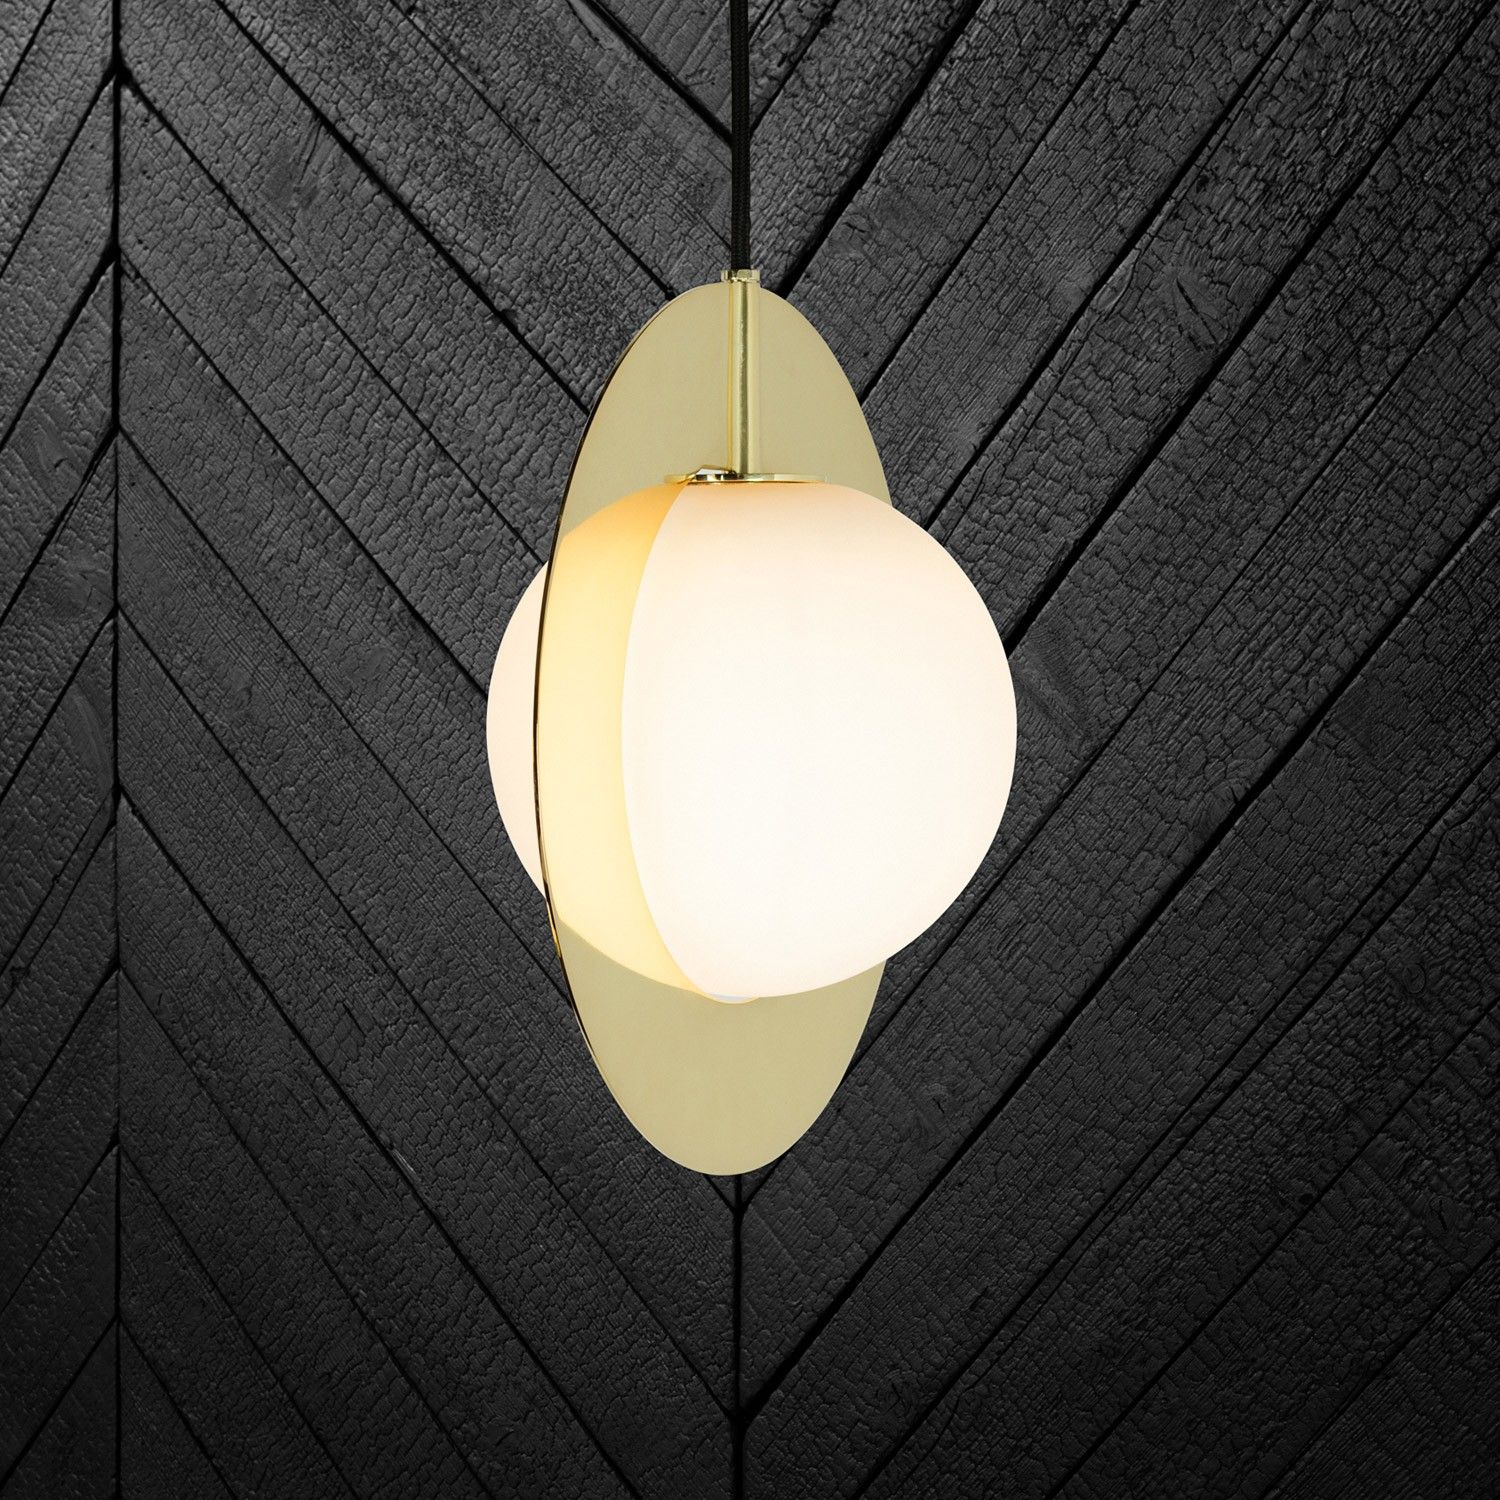 New tom dixon plane collection round pendant large white pig and the plane round pendant light is simple and minimal presenting basic forms in a aloadofball Gallery